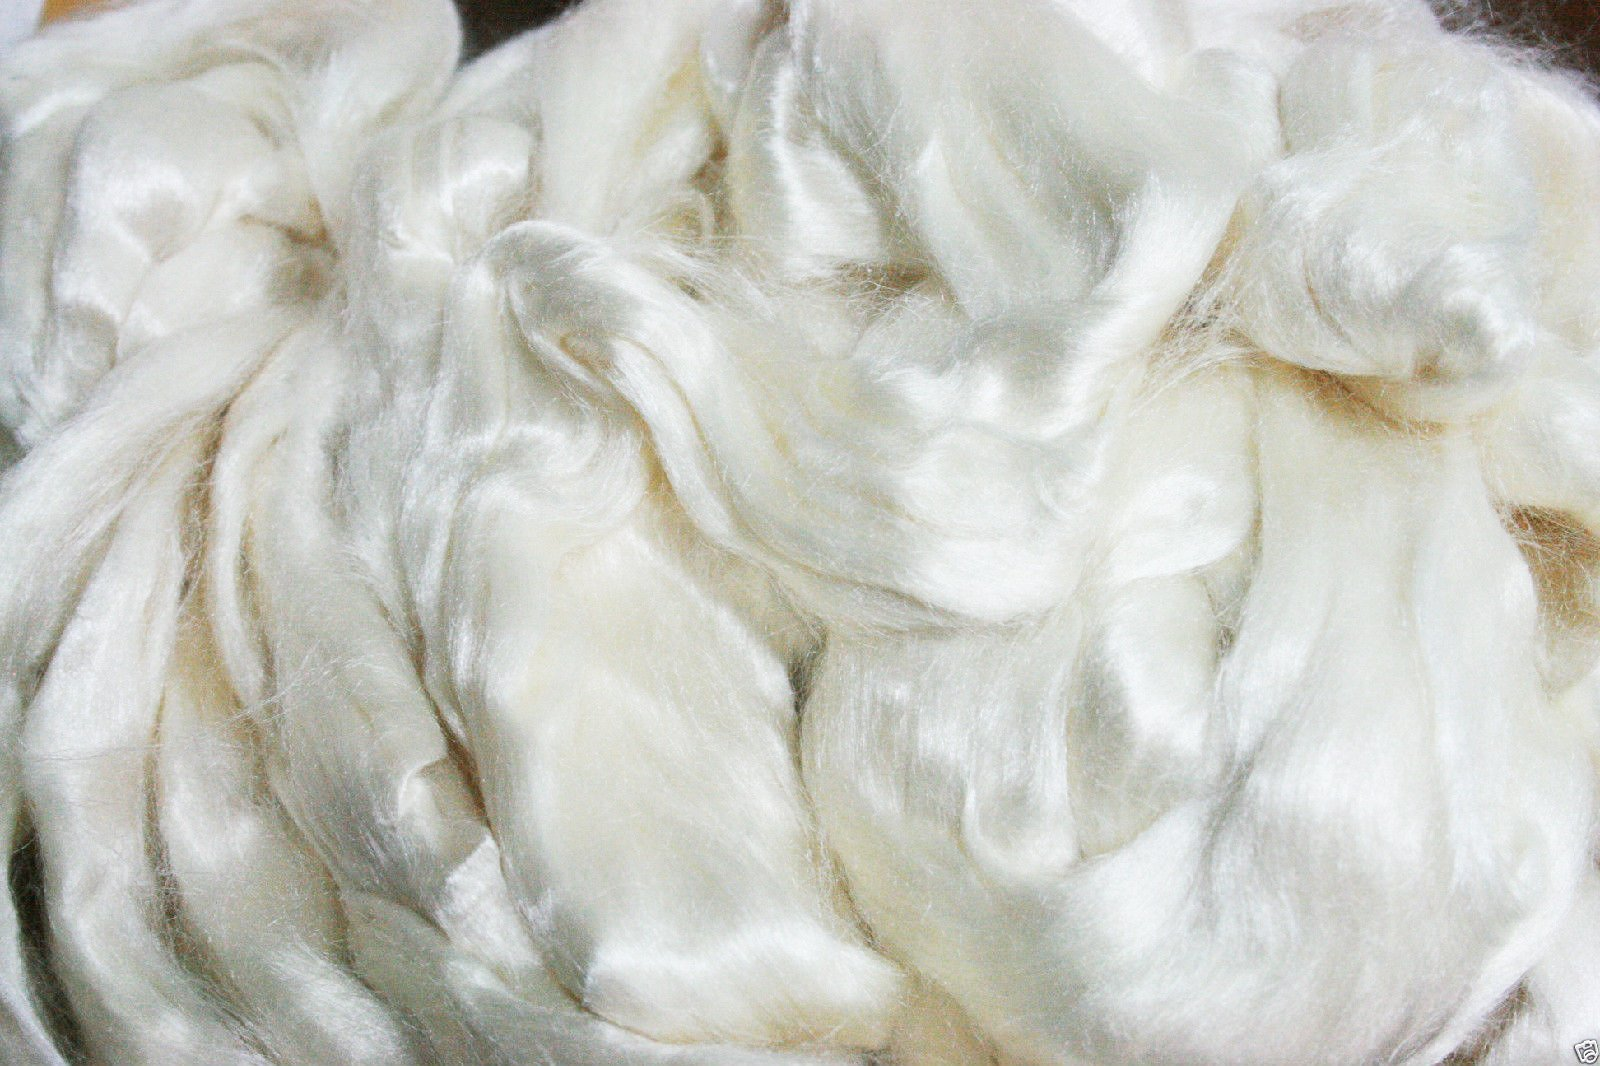 Yarn Place Tussah Silk Bleached Roving Spinning Felting Fiber Tops 8 oz by Yarn Place